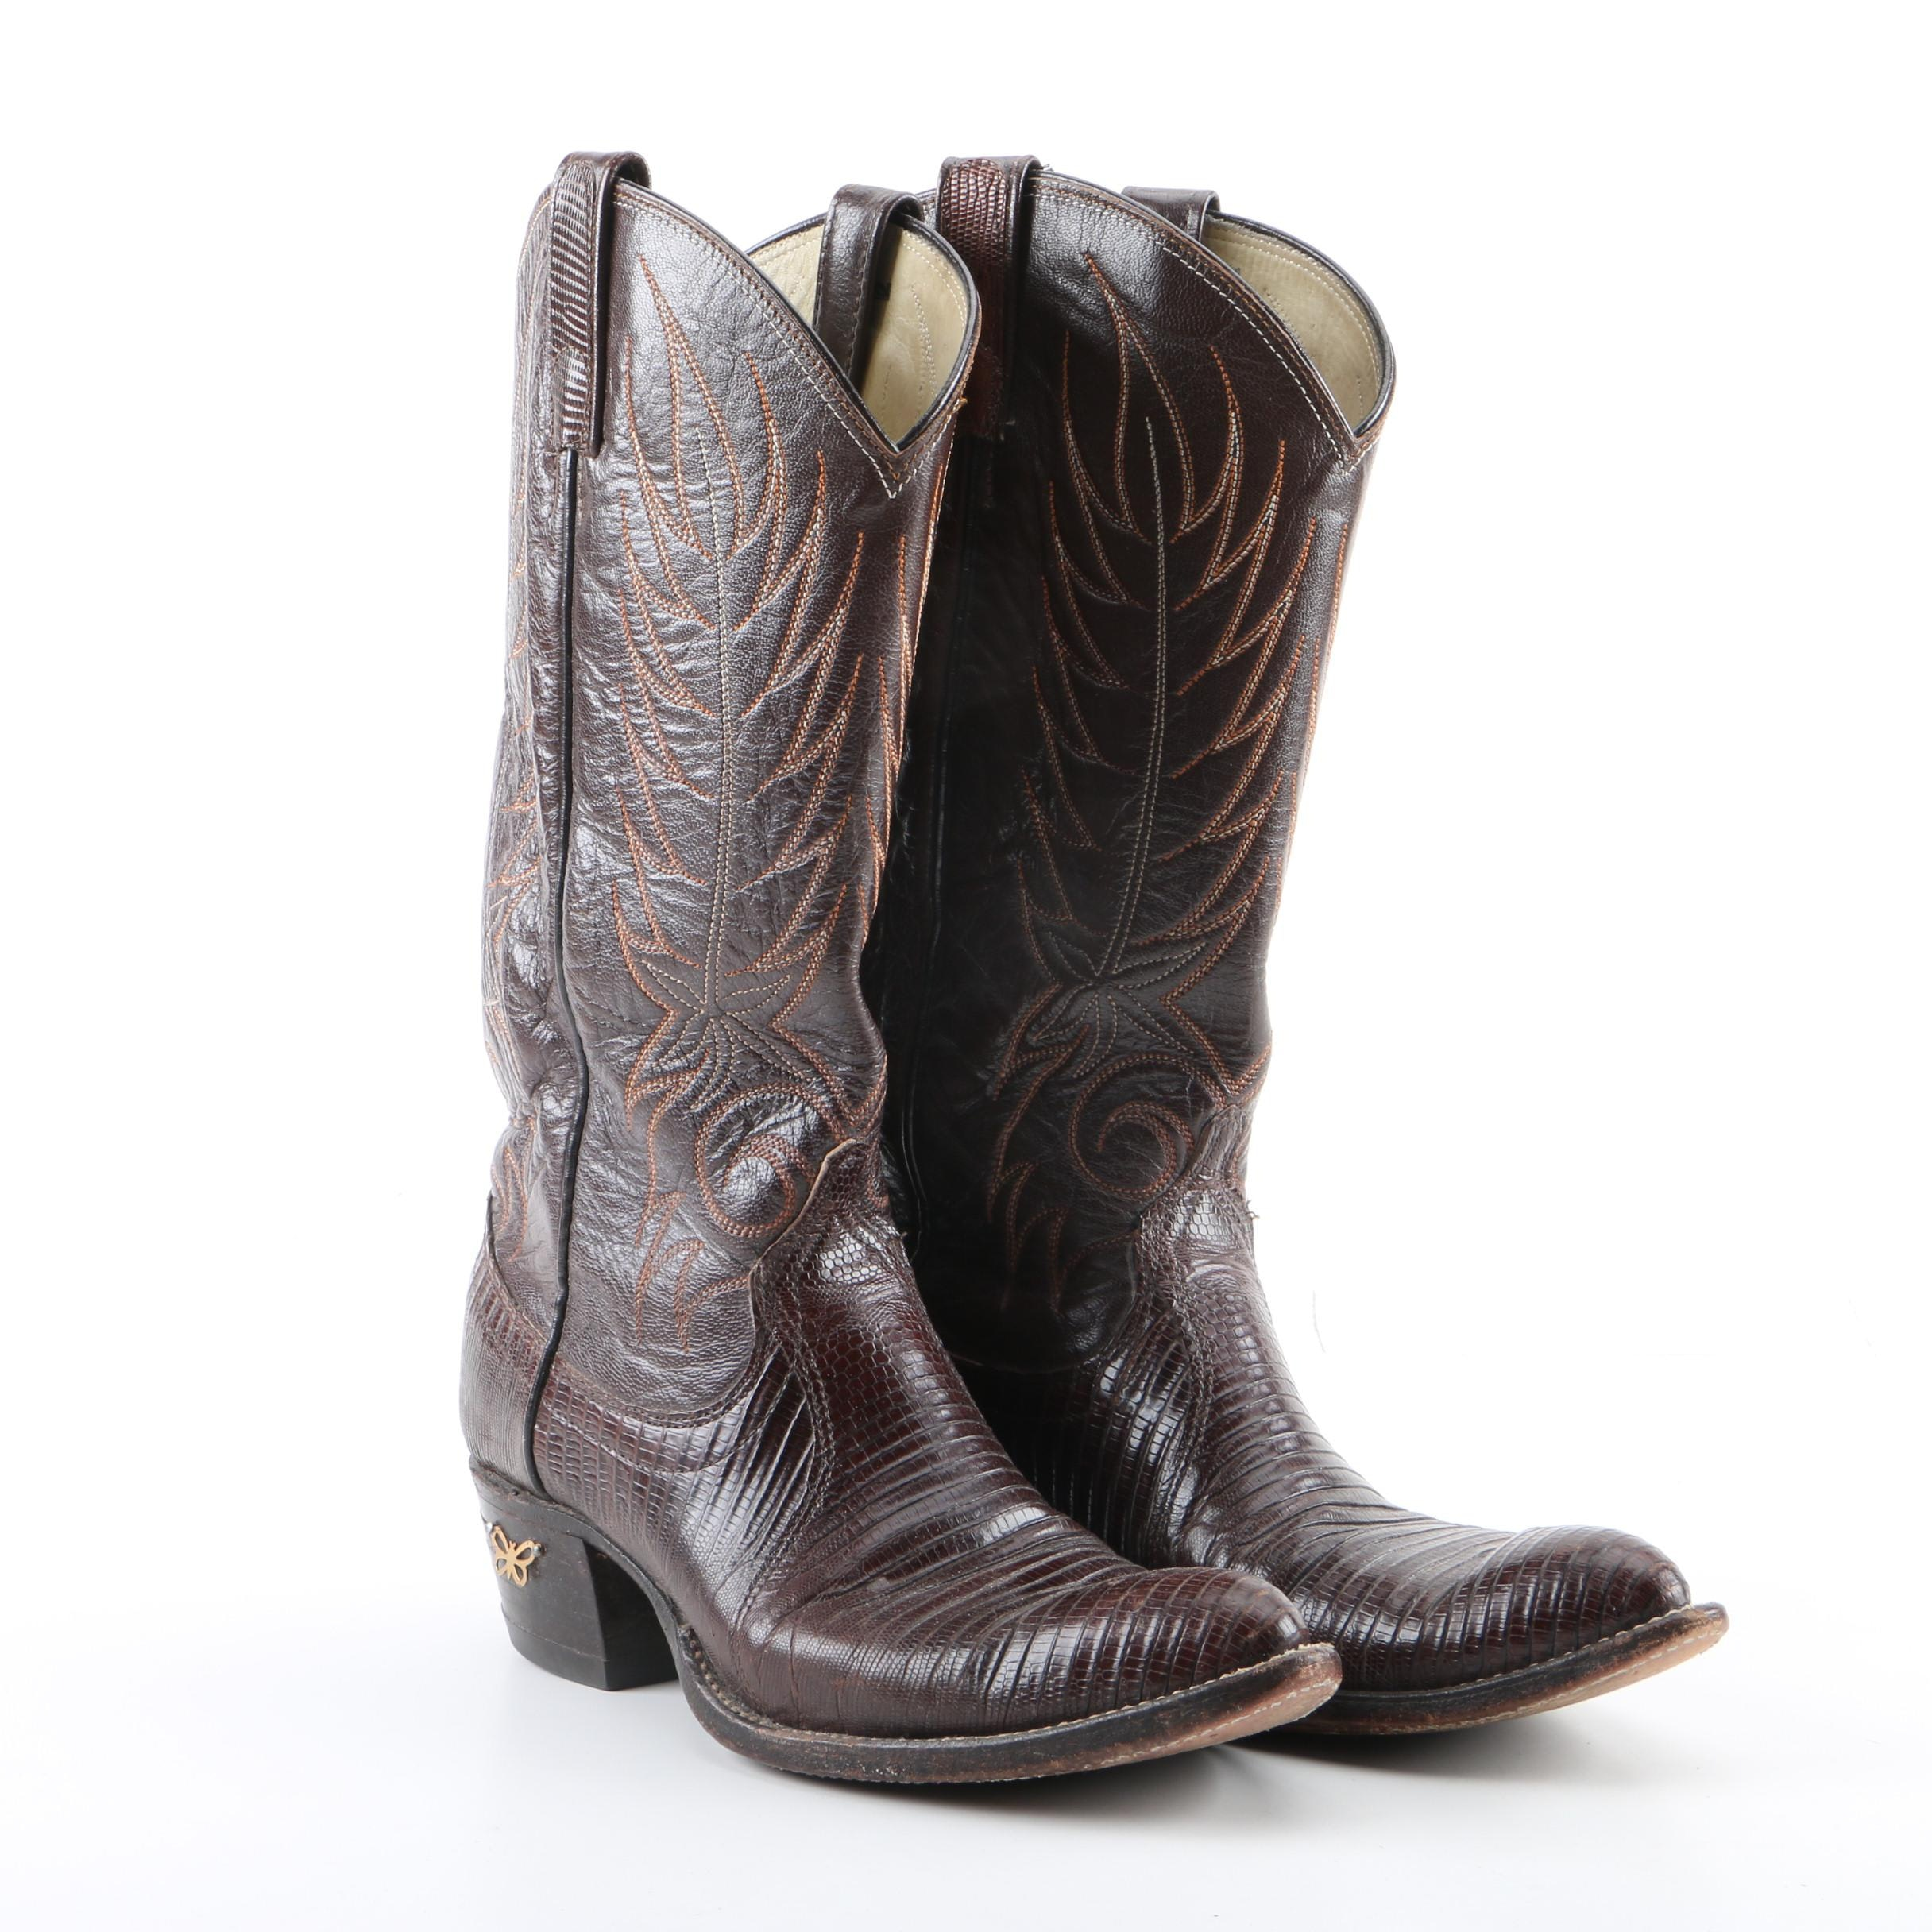 Women's Dan Post Brown Leather and Lizard Skin Western Boots